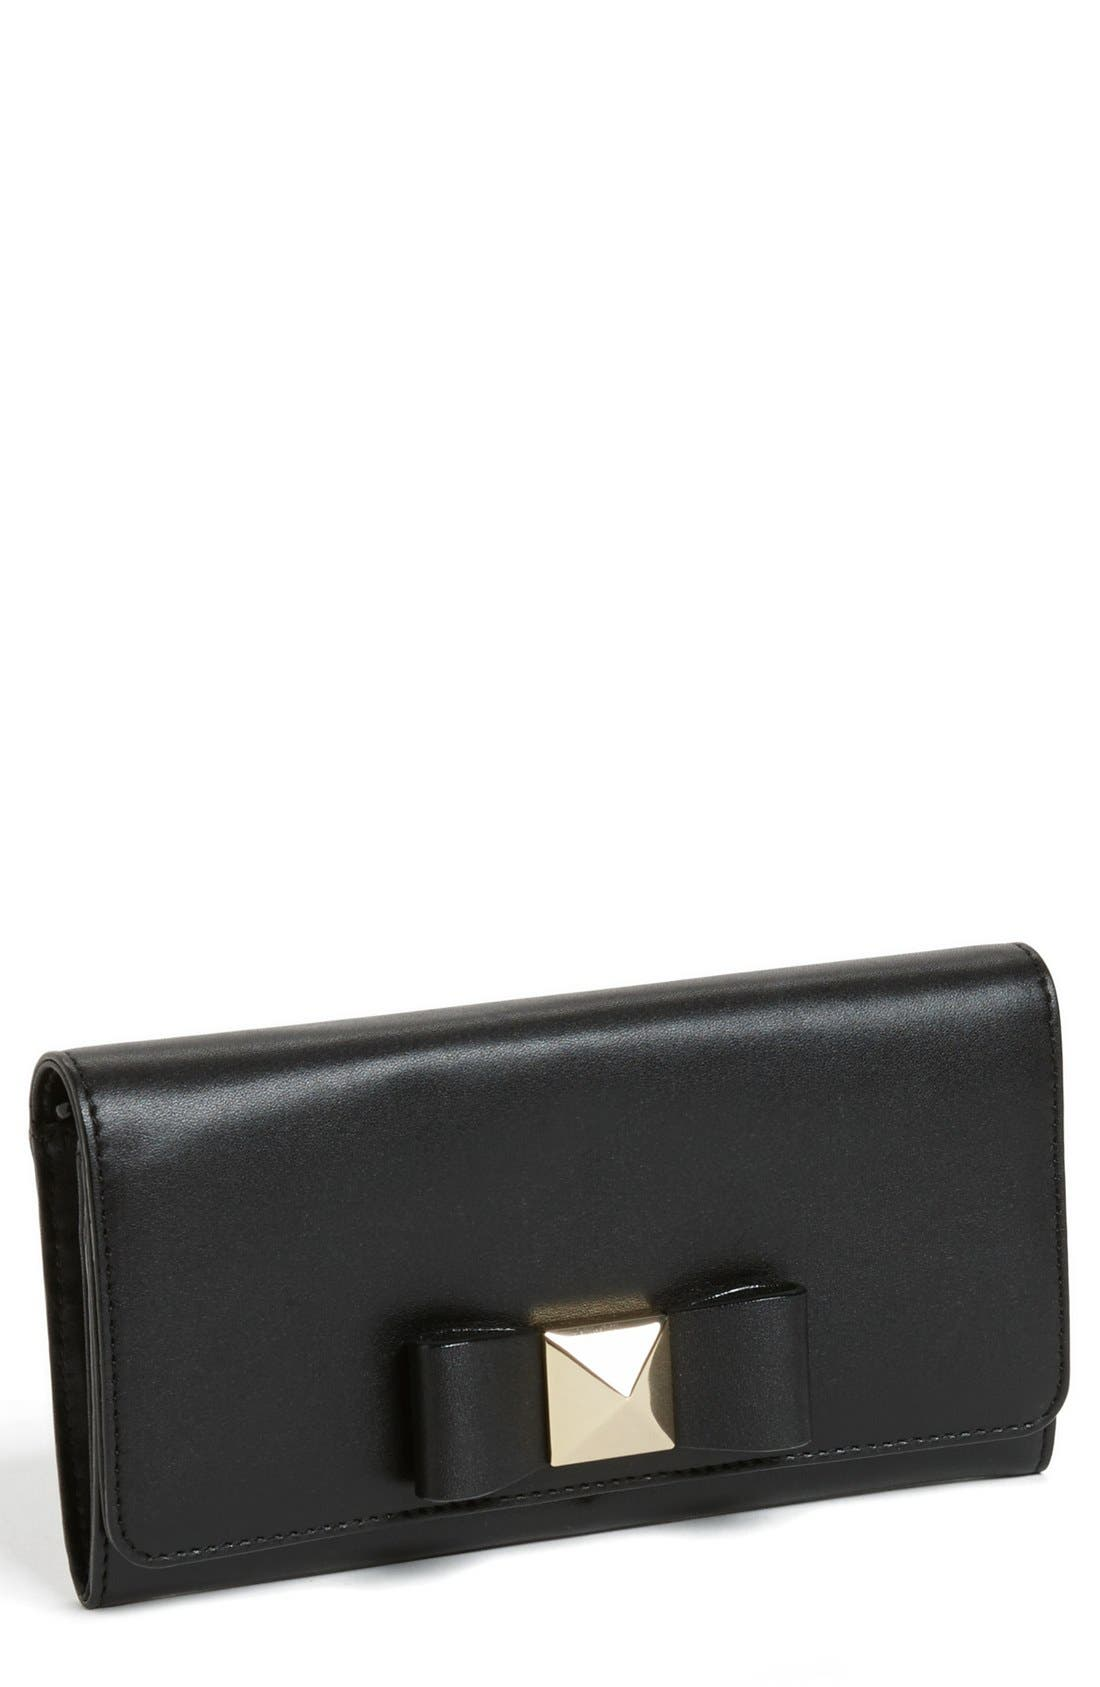 Main Image - kate spade new york 'bow terrace - cindy' continental wallet